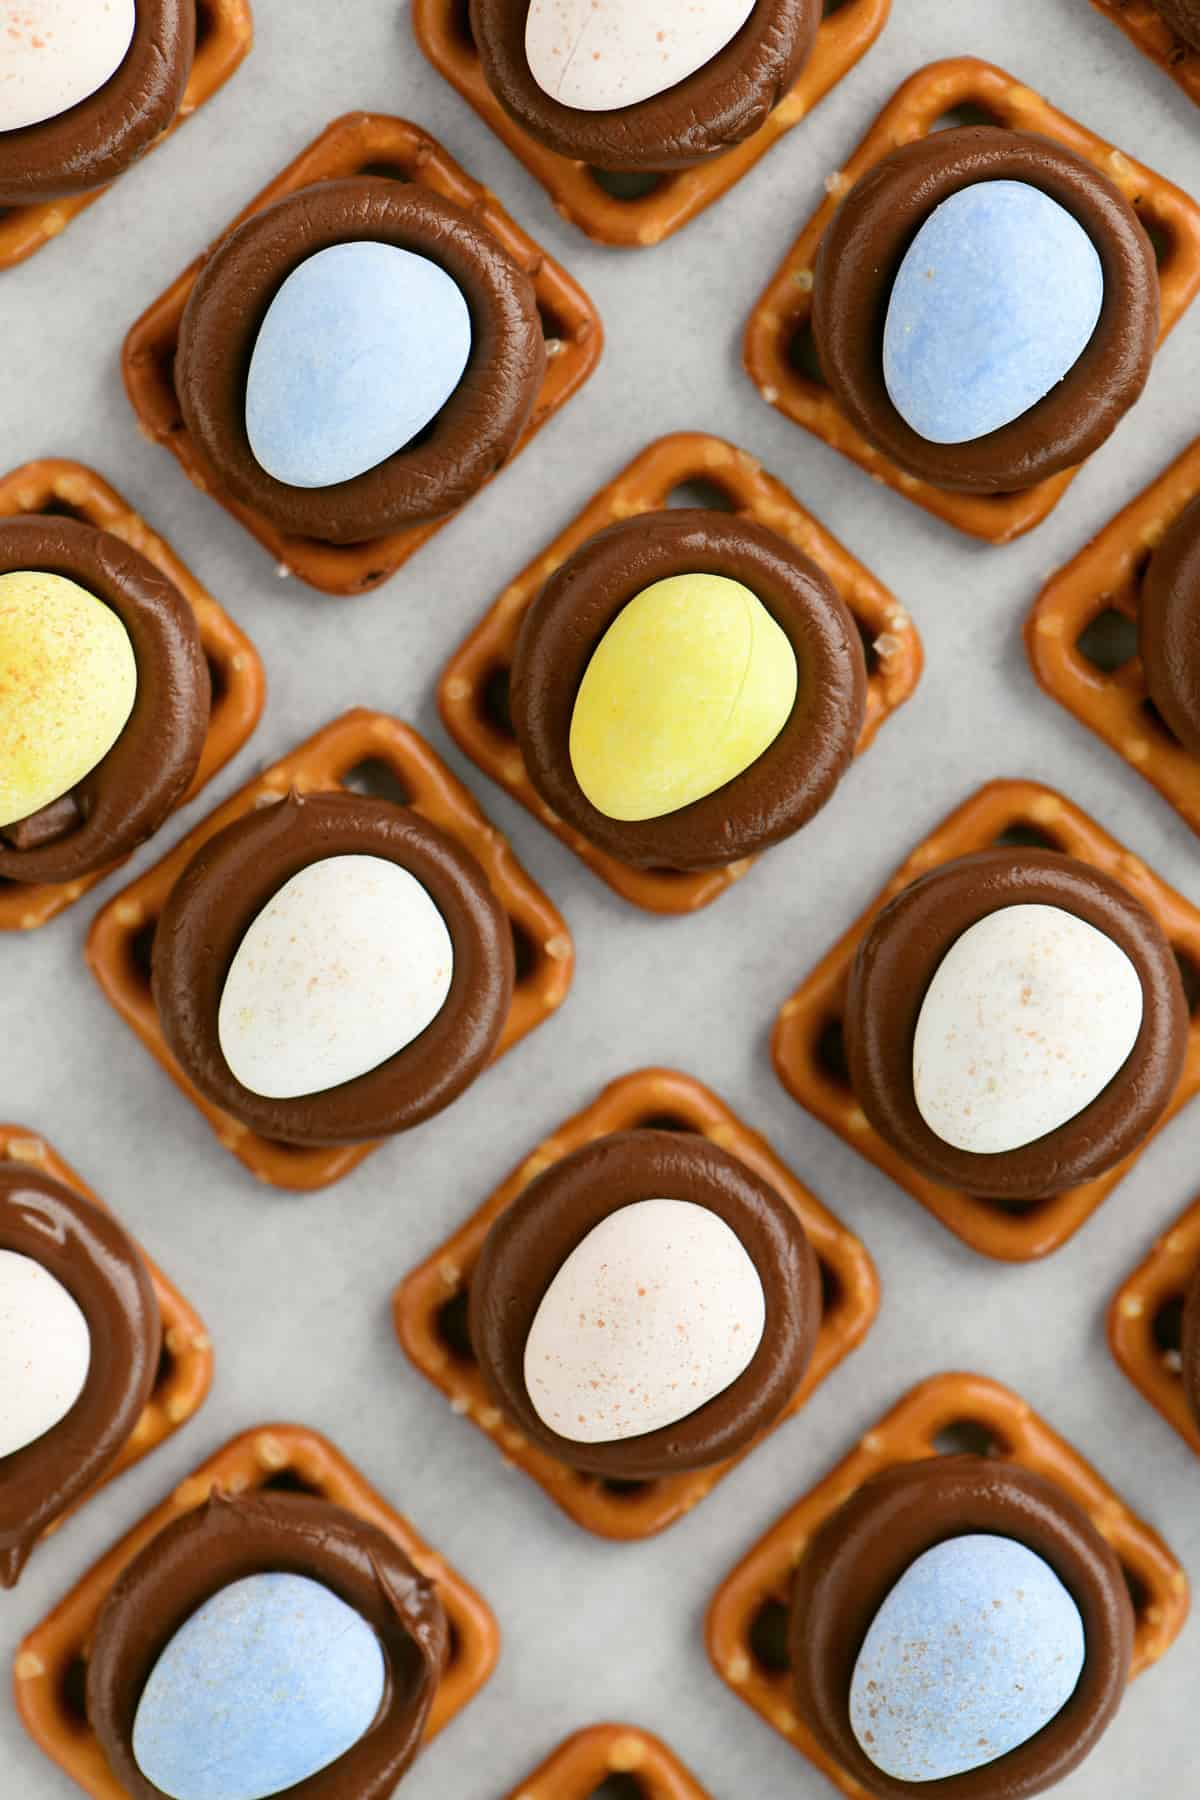 yellow blue and white candy eggs on chocolate kisses on top of pretzel squares